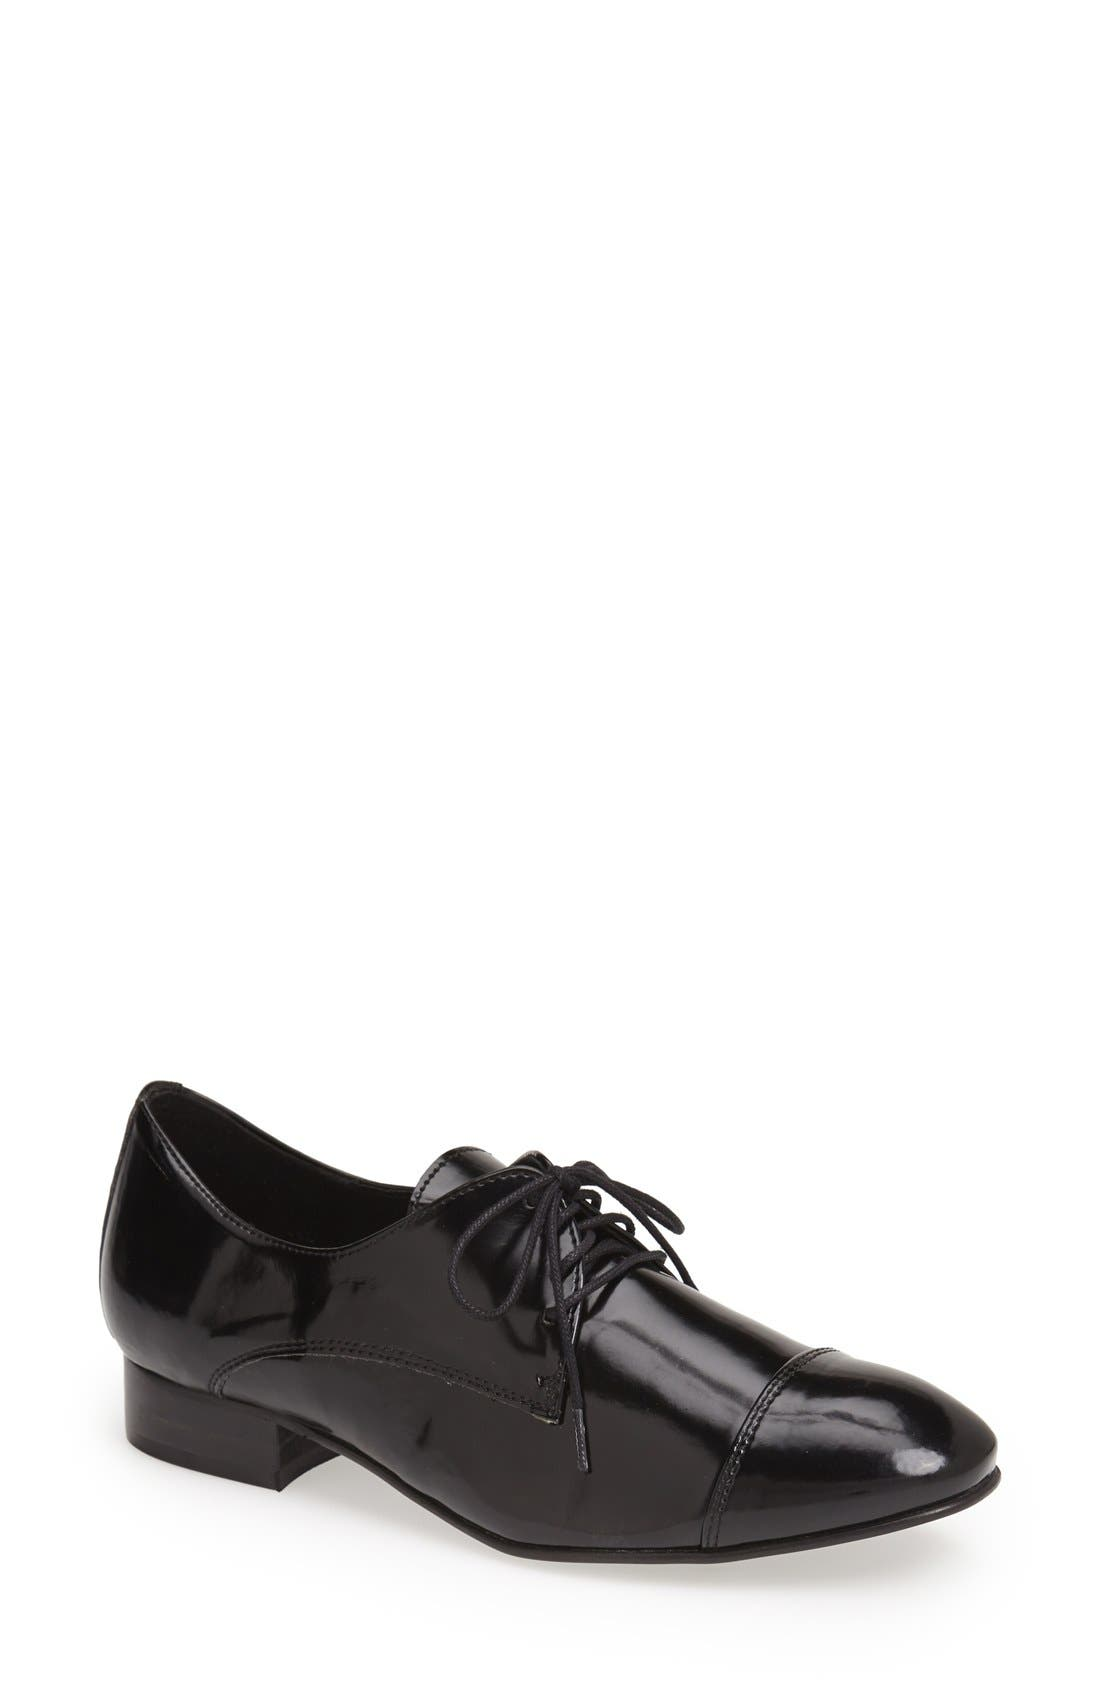 Alternate Image 1 Selected - KG Kurt Geiger 'Lennox' Patent Oxford (Women)